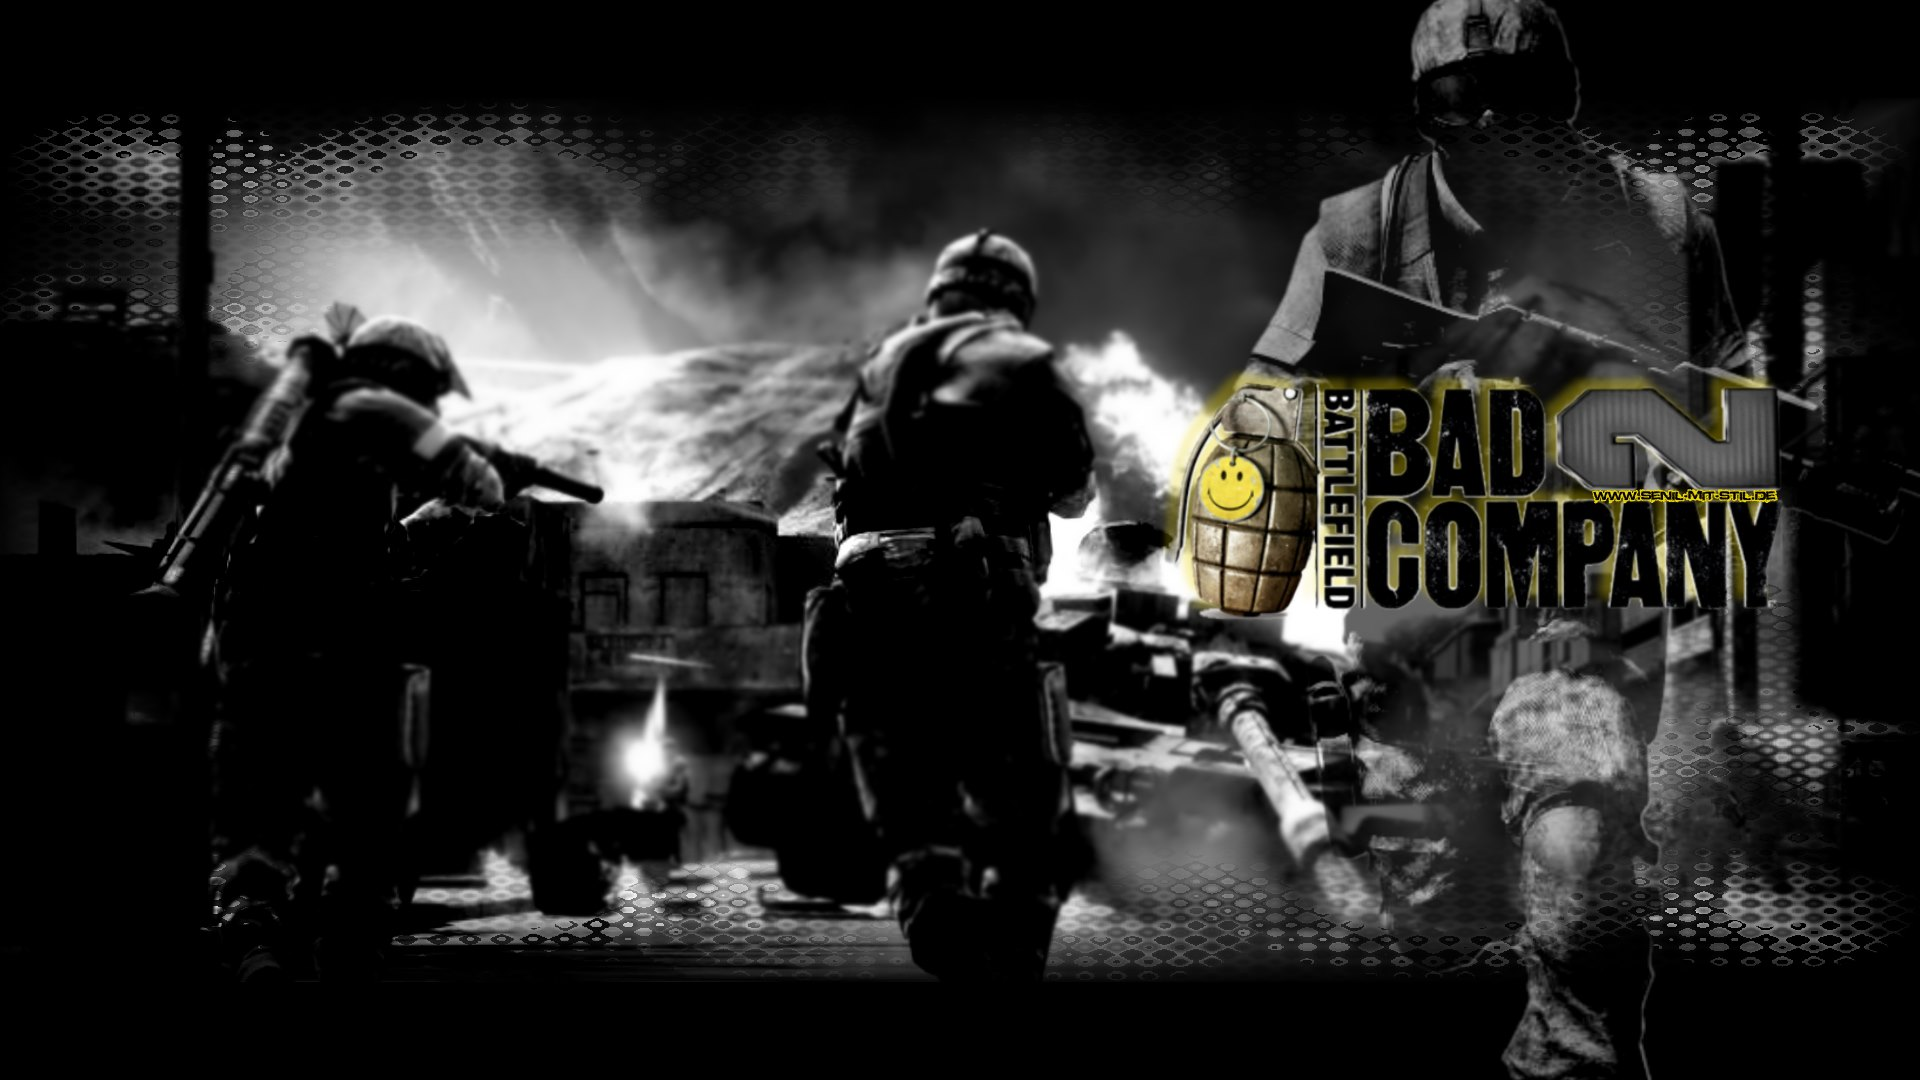 Bad Company Wallpaper Page 16 Images 1920x1080